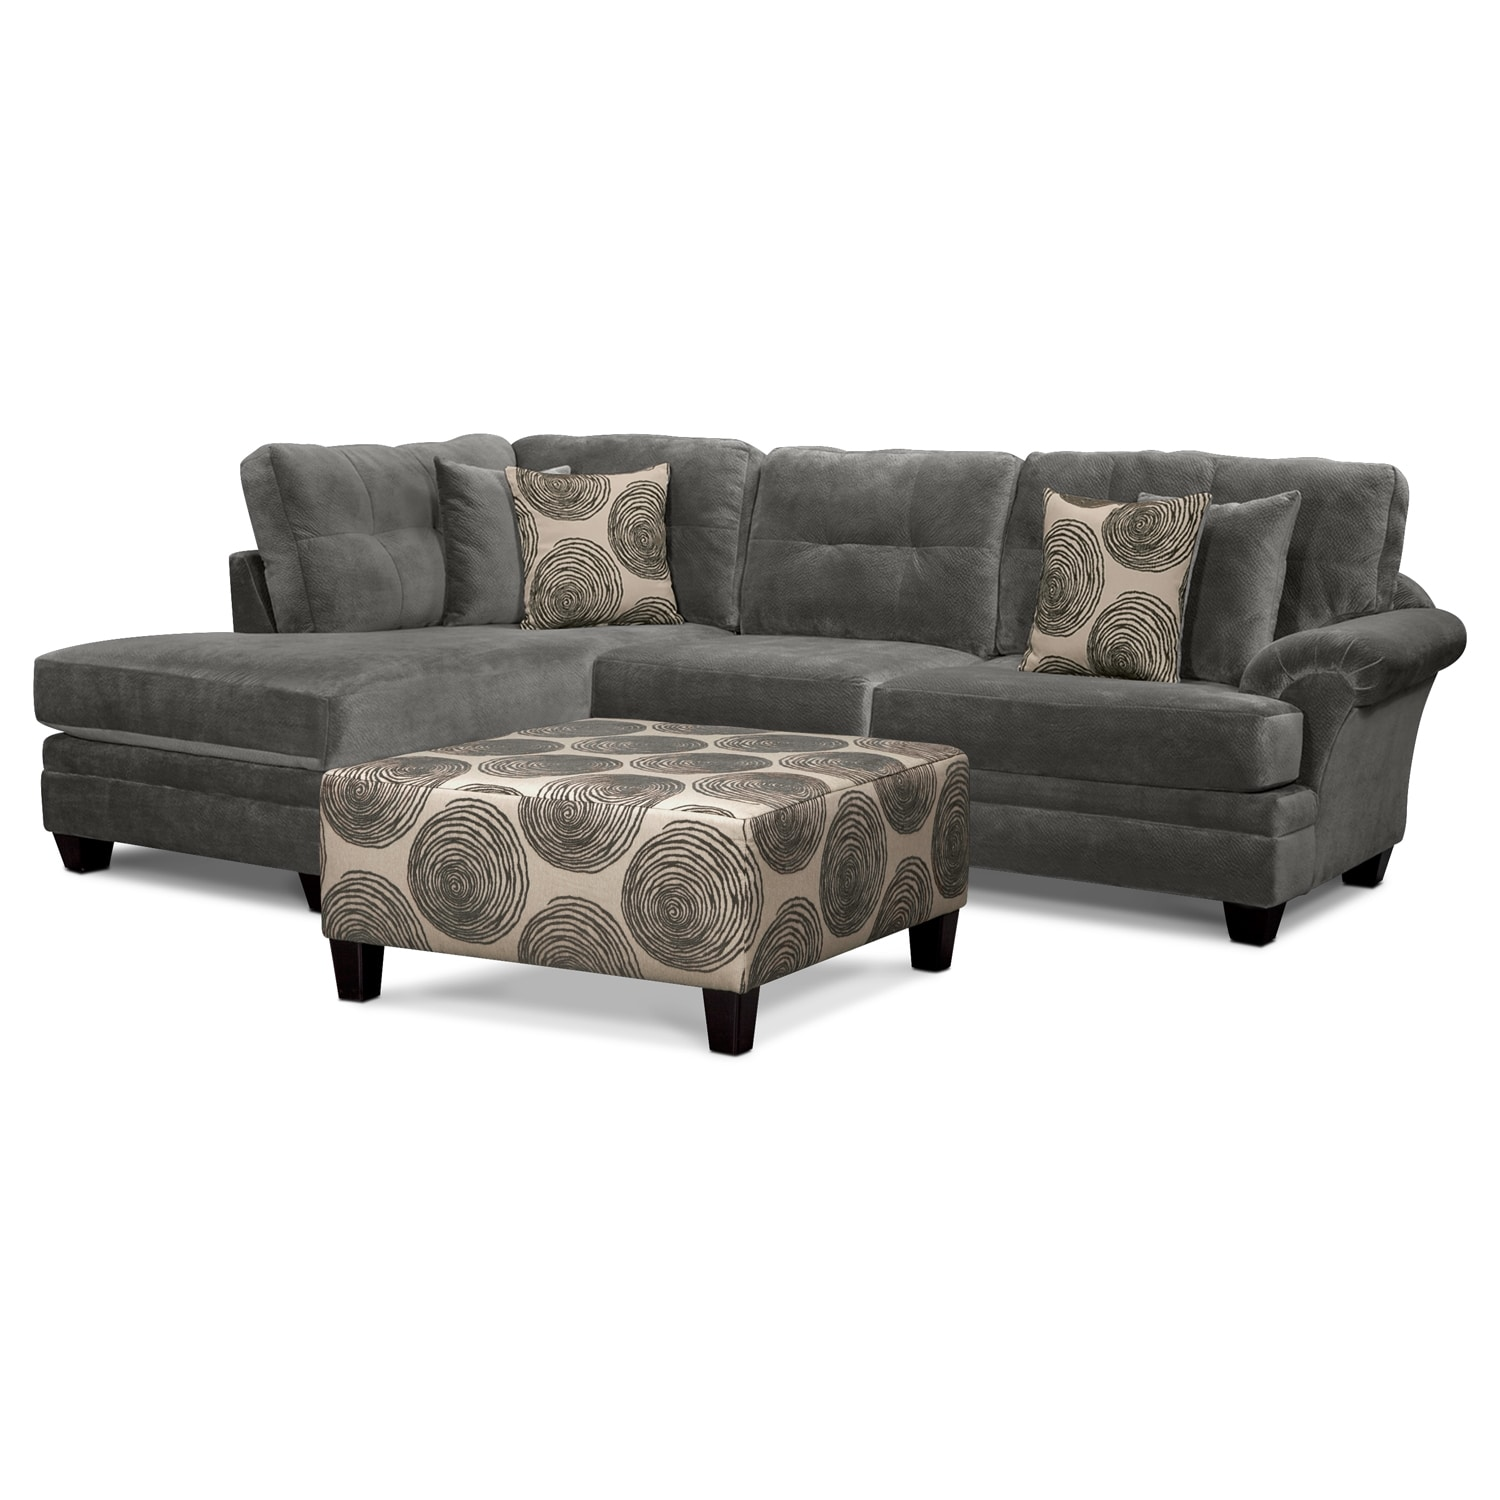 Cordelle 2-Piece Left-Facing Chaise Sectional and Cocktail Ottoman Set - Gray